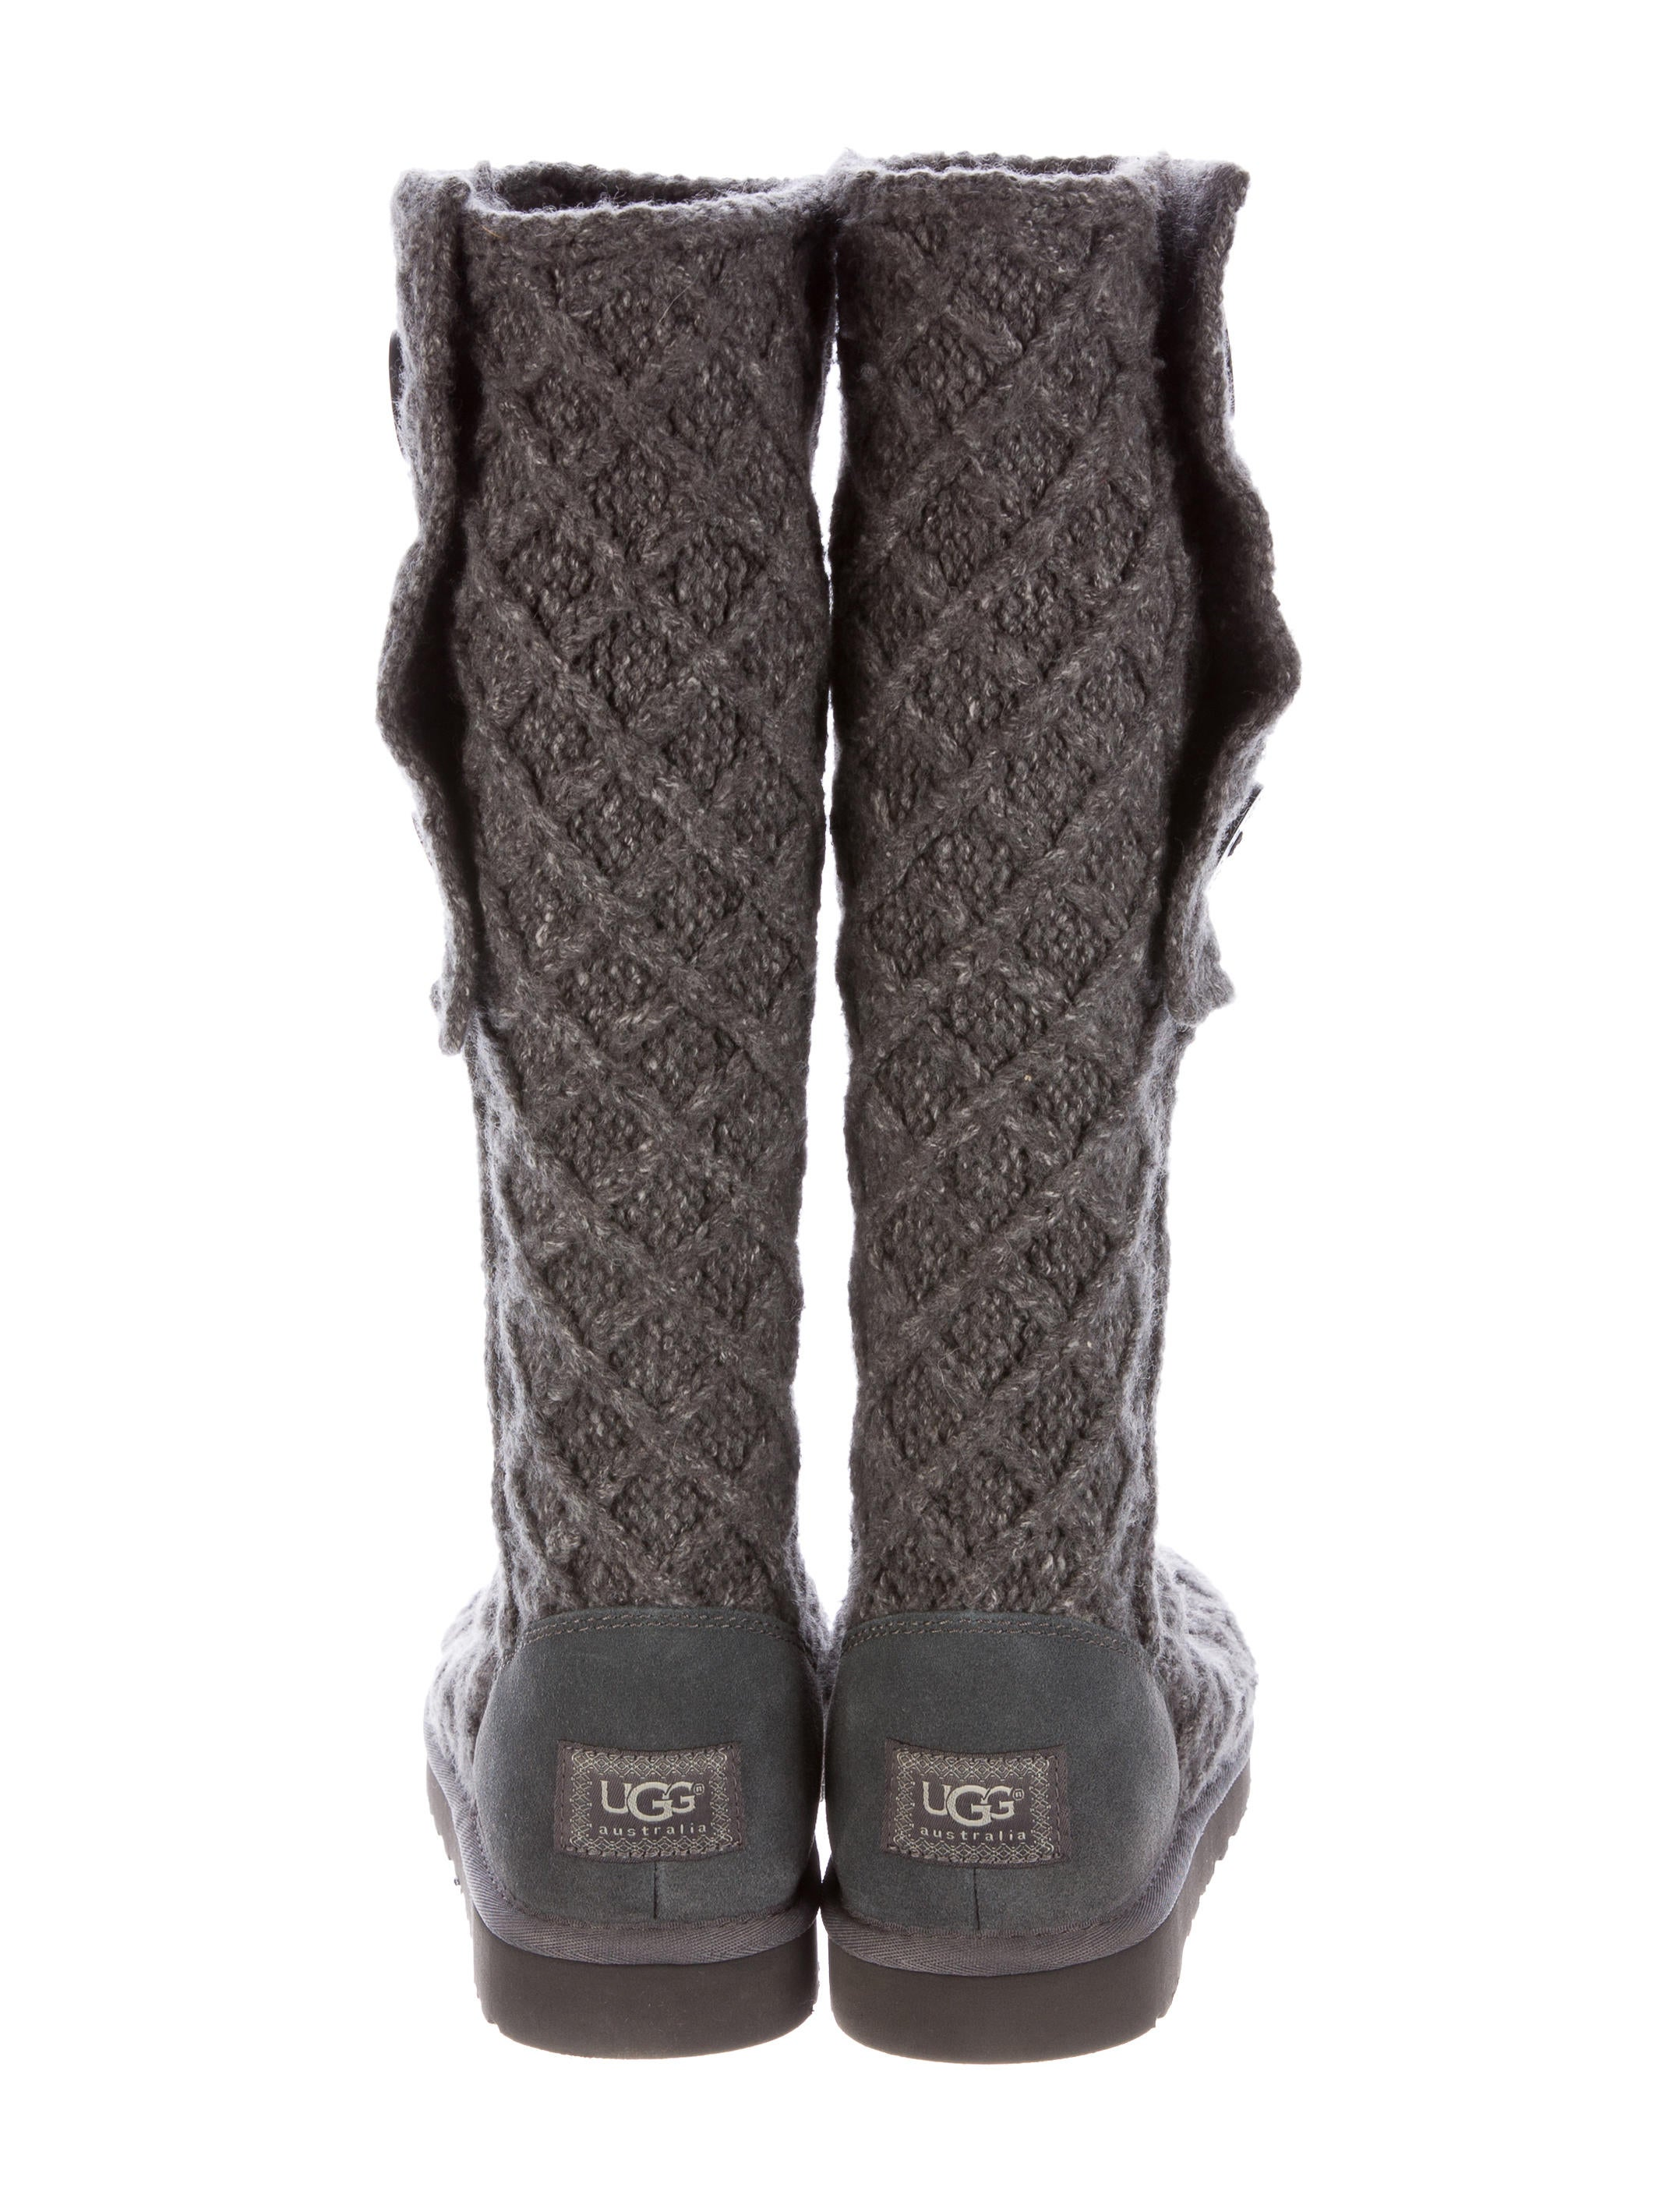 187bc2321 Knee High Knit Ugg Boots